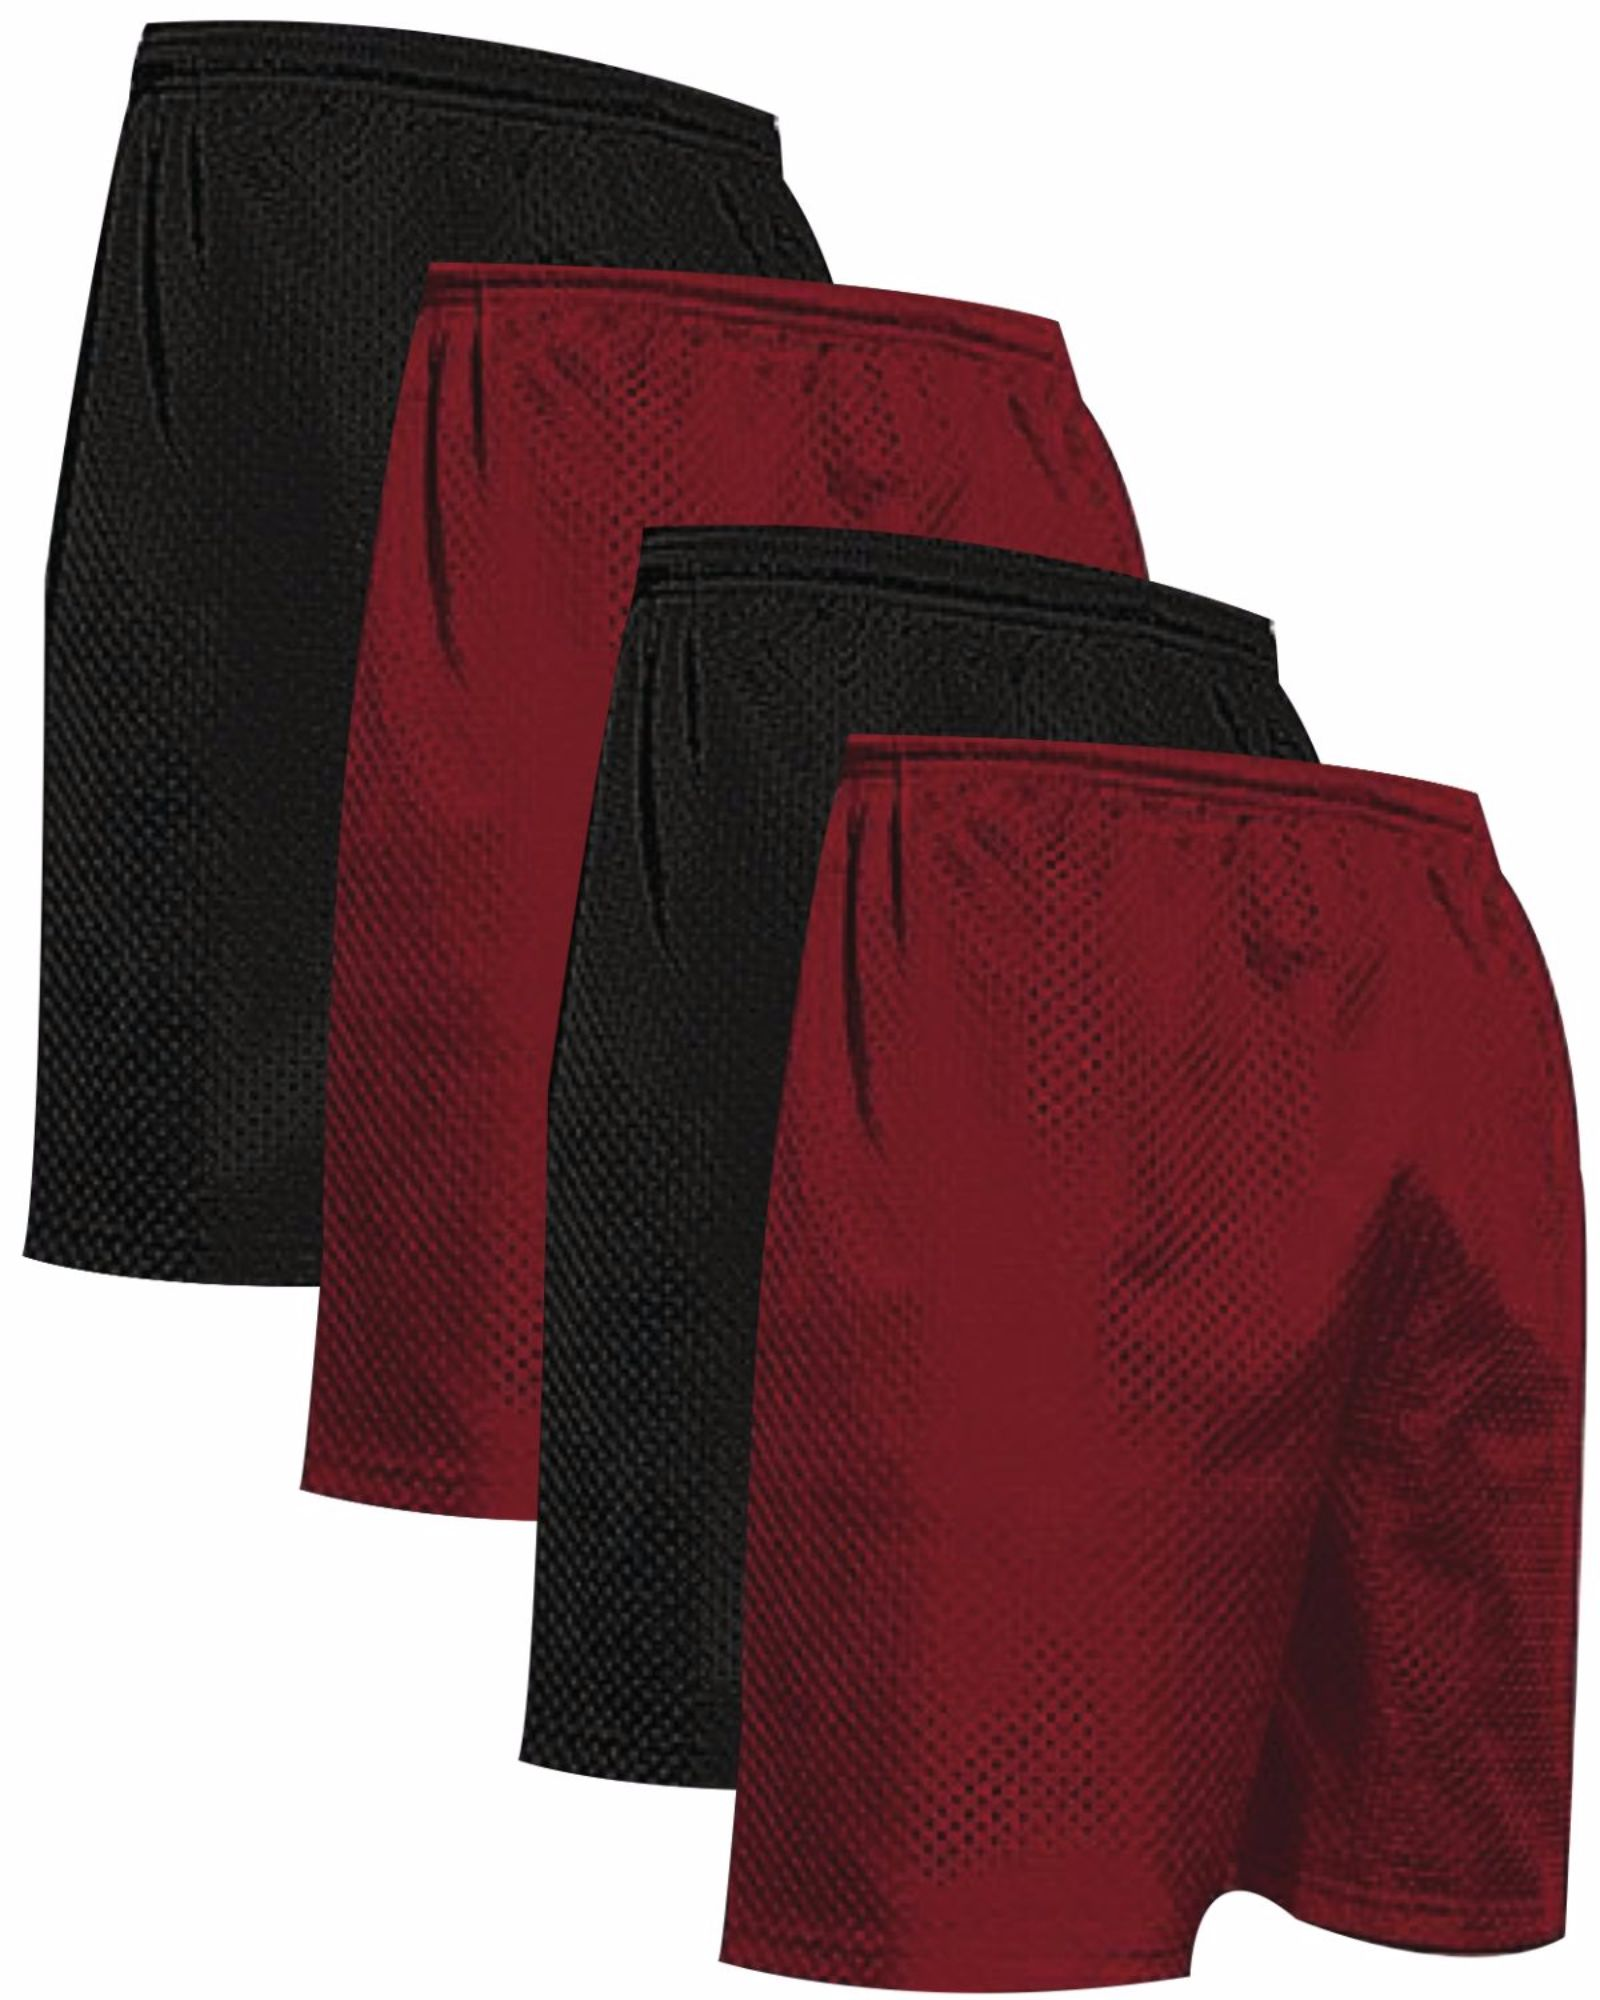 """VALUE PACK  > BUY 2 GET 2 FREE >  4 PACK > THE RAM BRAND > Men's  9"""" Performance Pro Mesh Gym Champ Shorts (XS-4XL) $10 S/H is on the 1st Pack only. In this Pack: (XS)(2Black/2Cardinal)"""